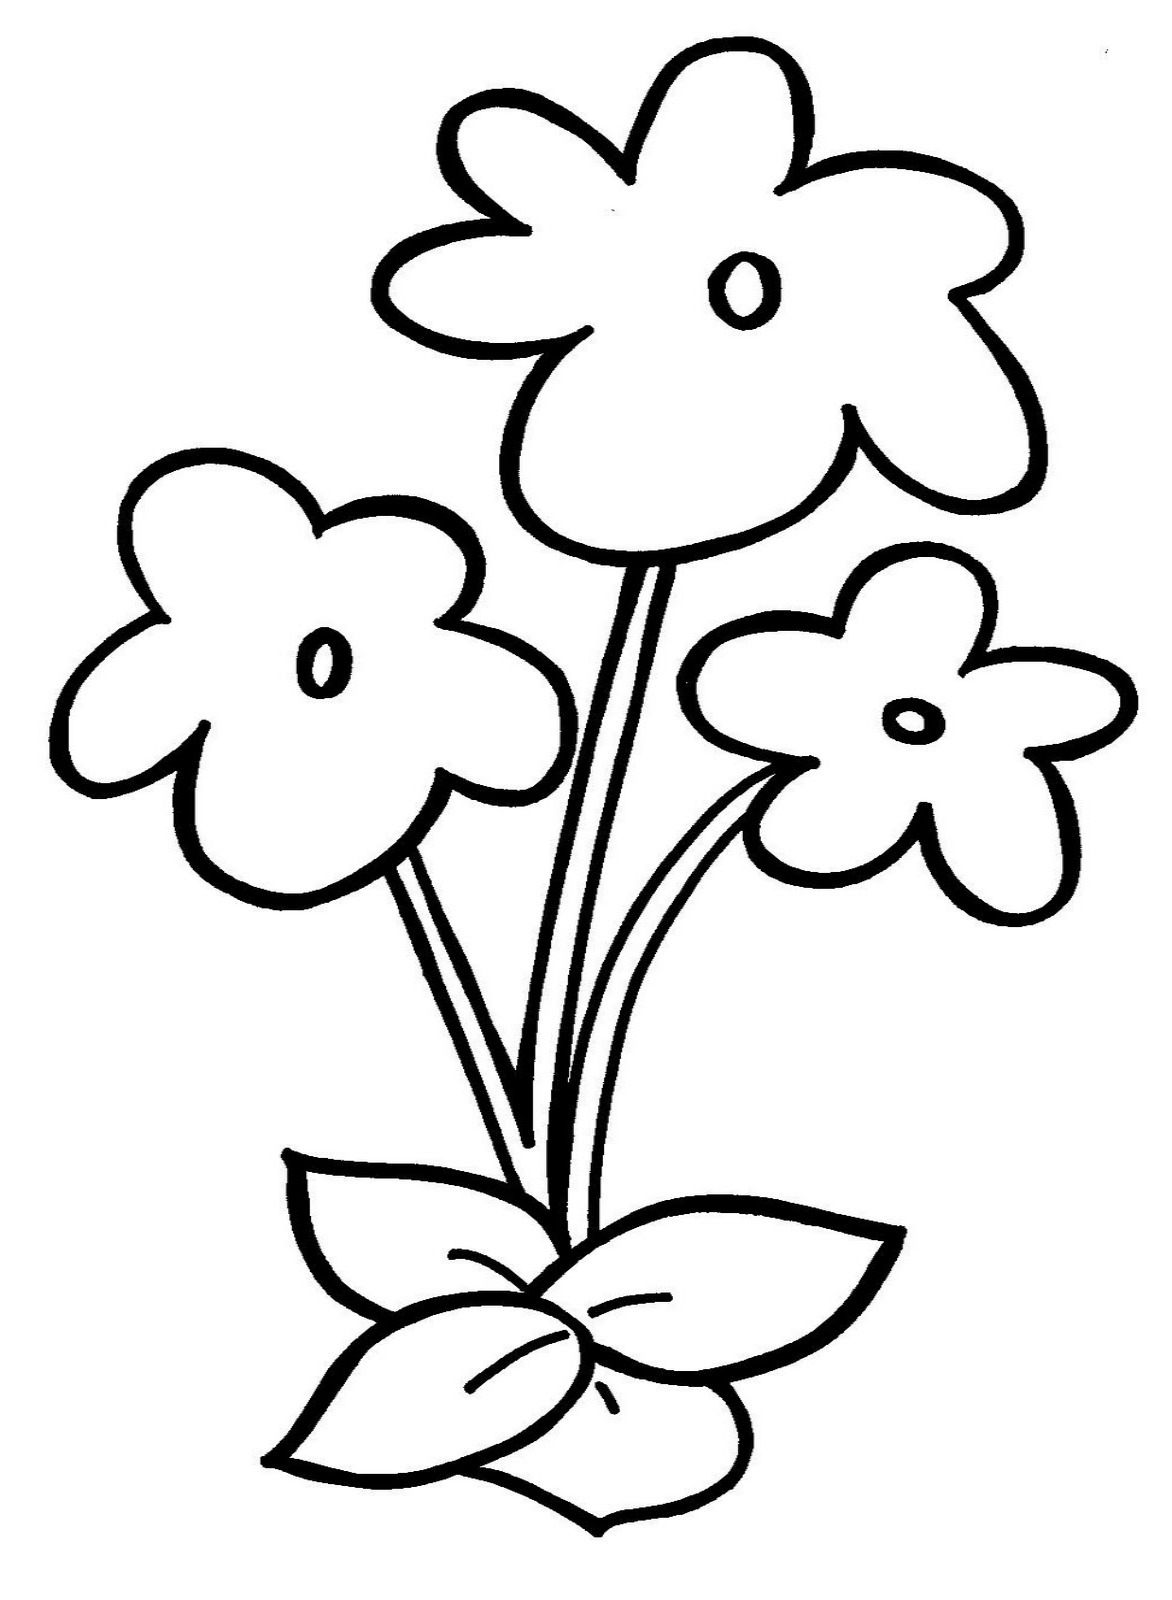 How To Draw Bouquet Of Flowers Step By Step Easy - Flowers Healthy